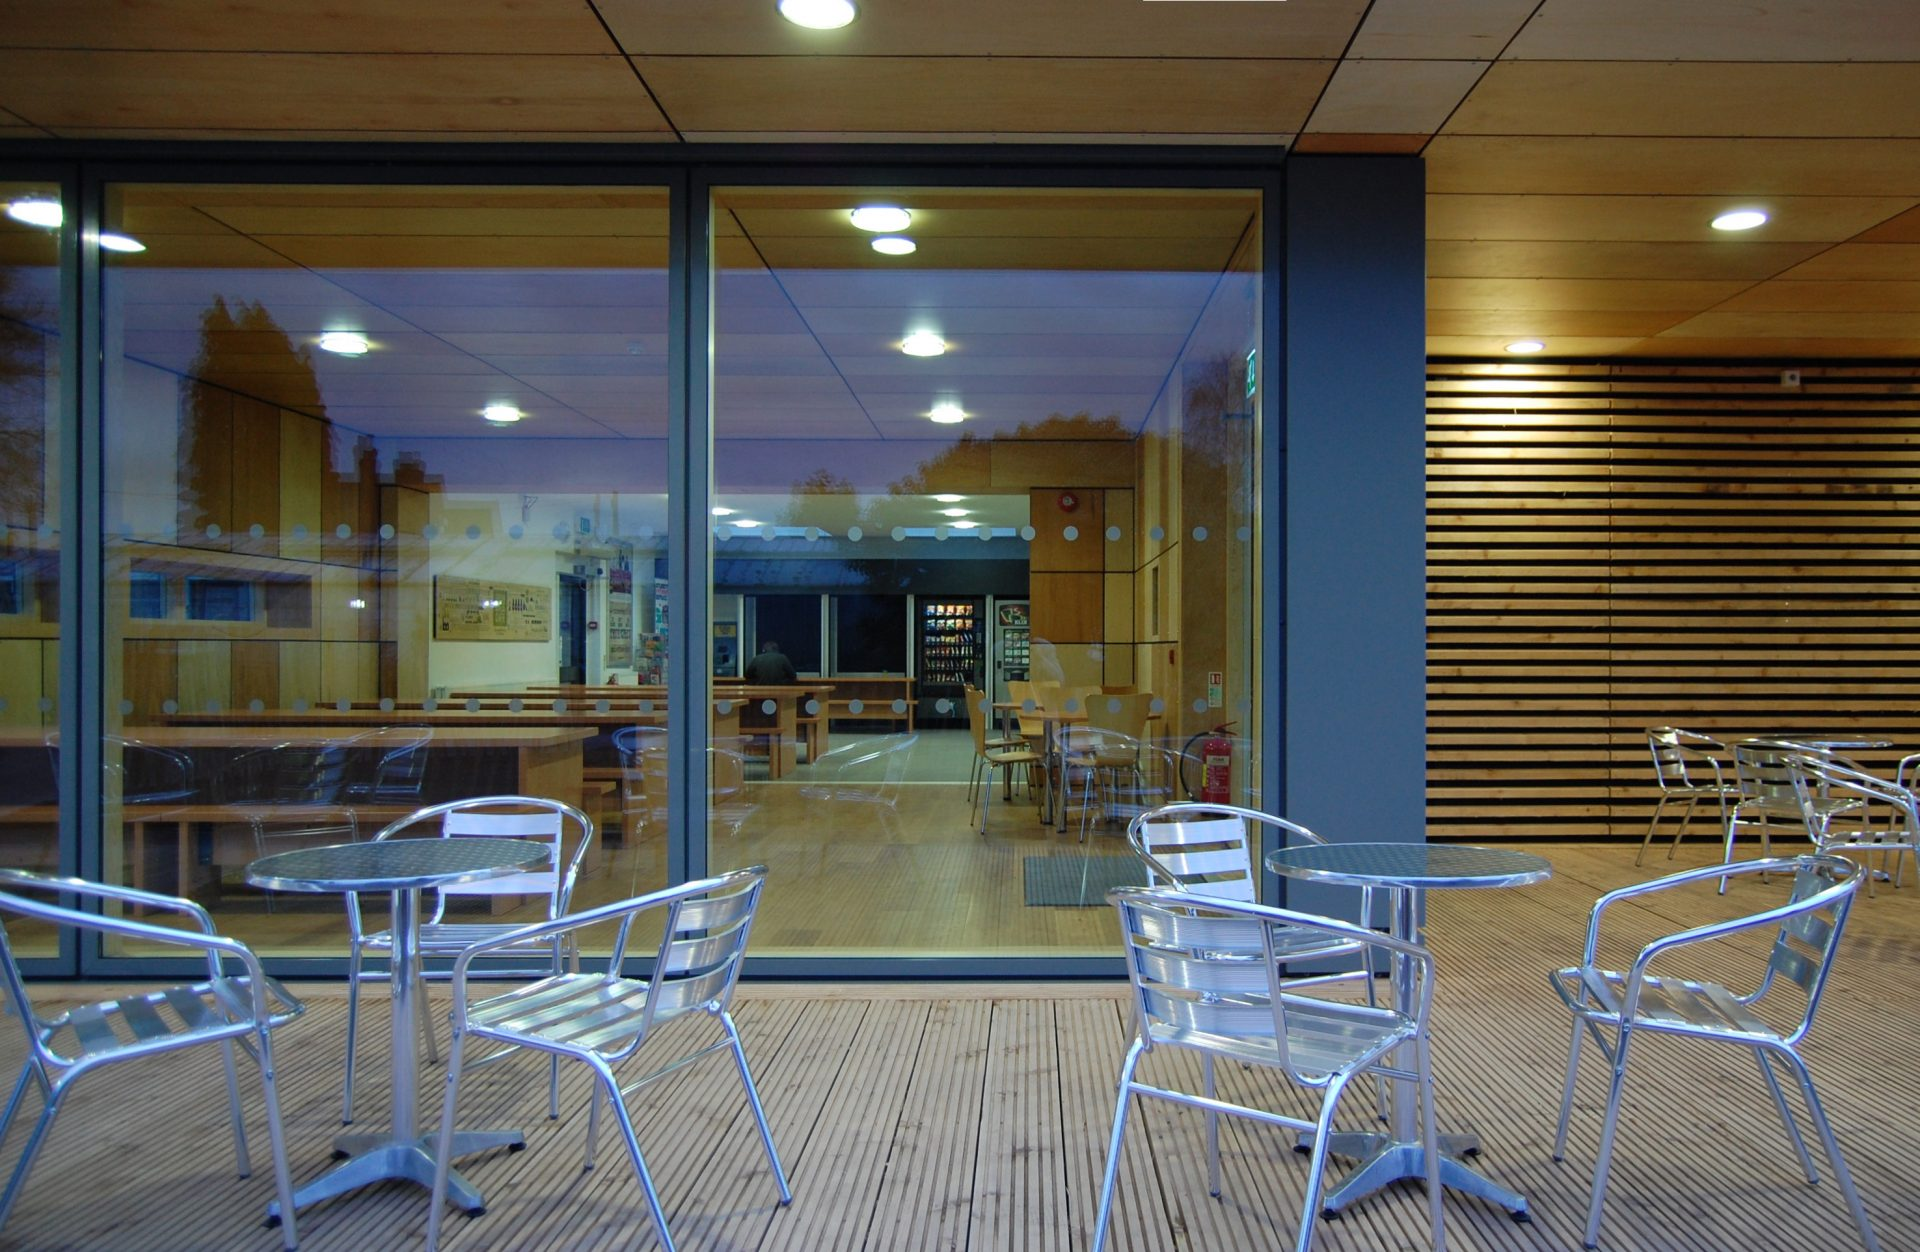 Straw Bale Cafe Exterior Plywood Cedar Velfac Decking Tables Chairs